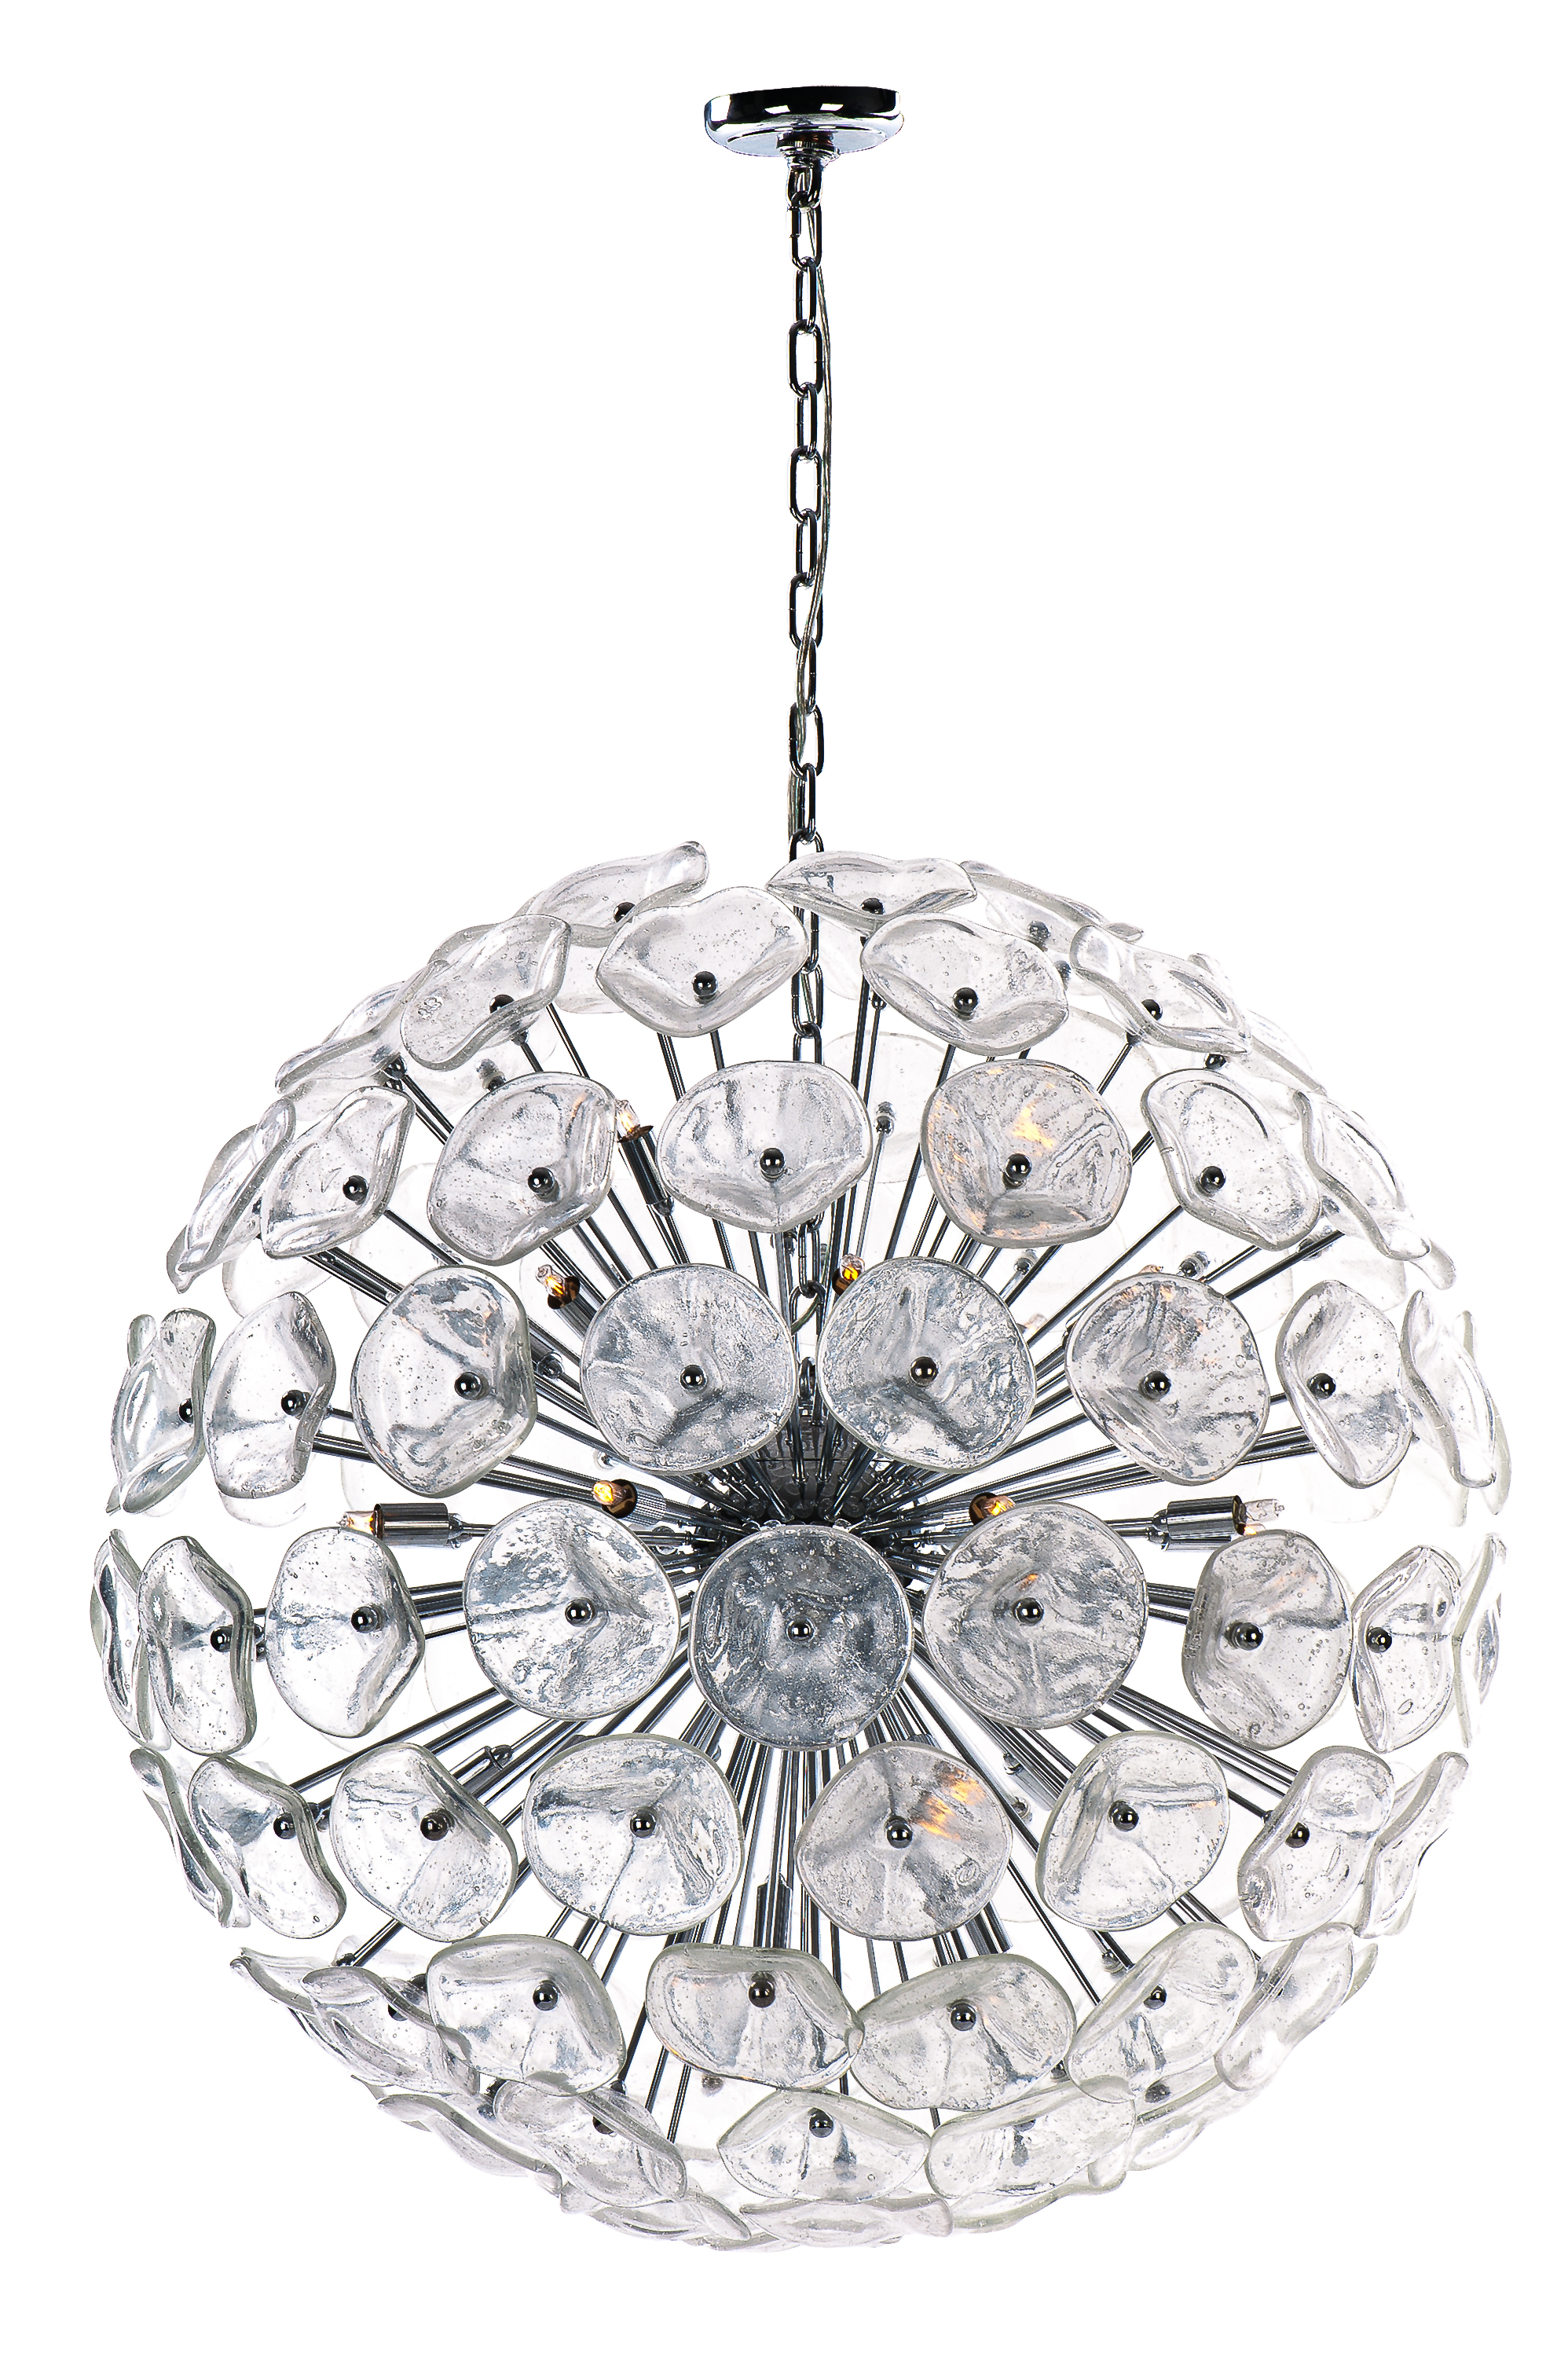 buy chandelier gatsby cr synchronicity skt products